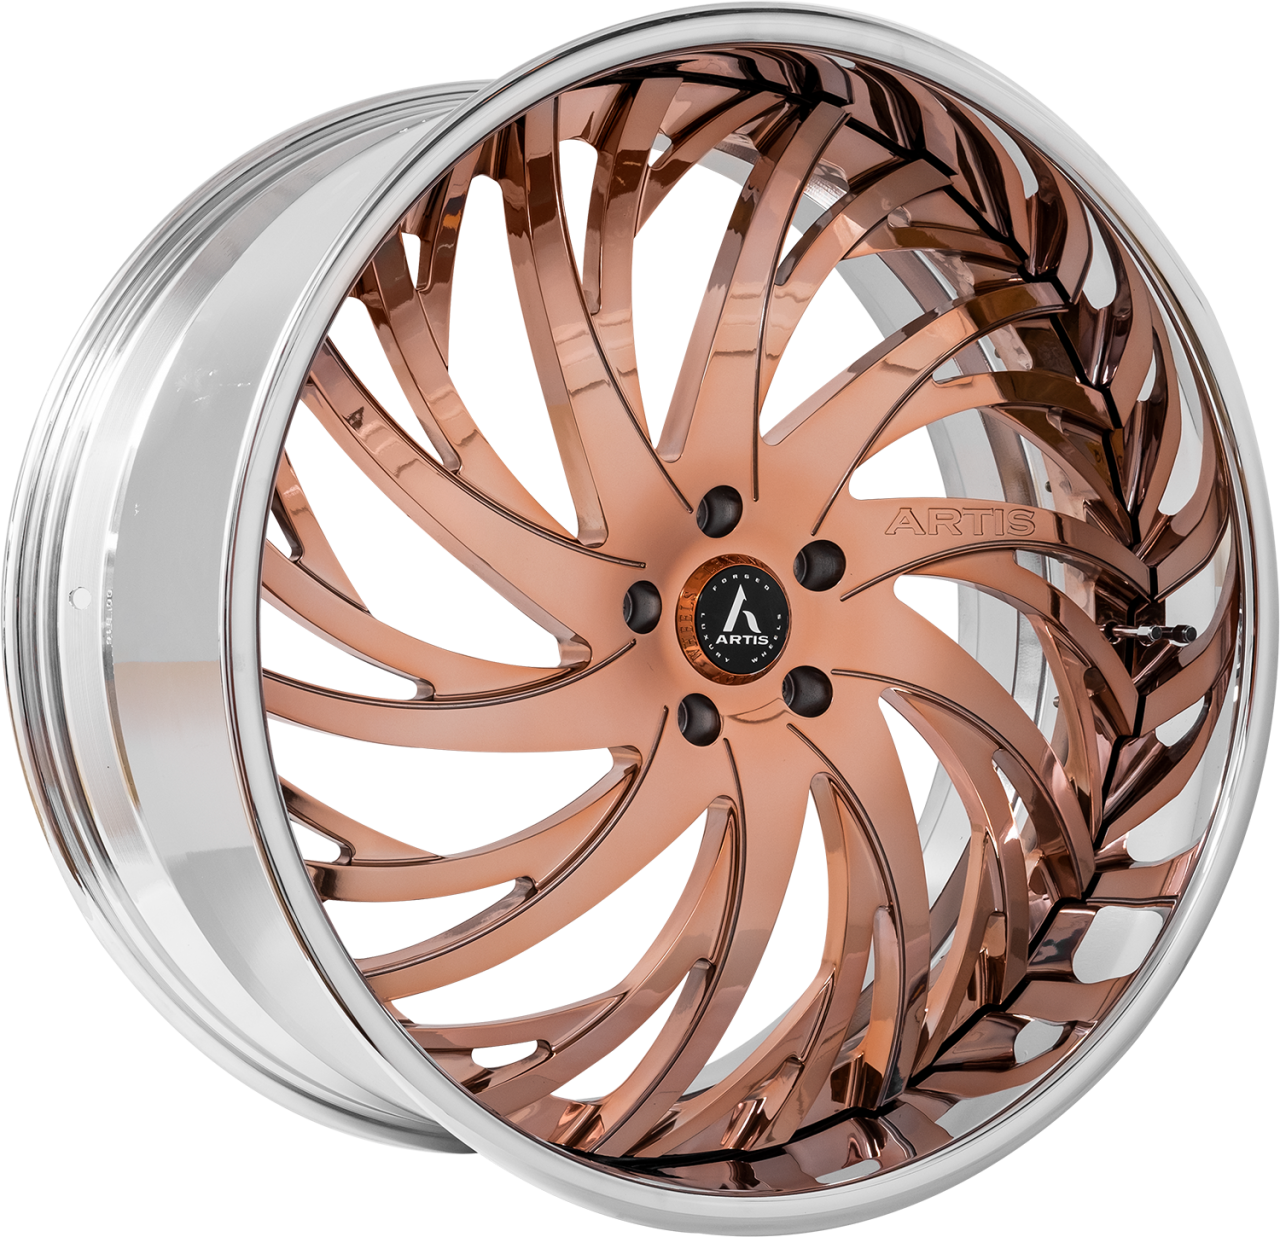 Artis Forged Decatur wheel with Rose Gold with Chrome Lip finish